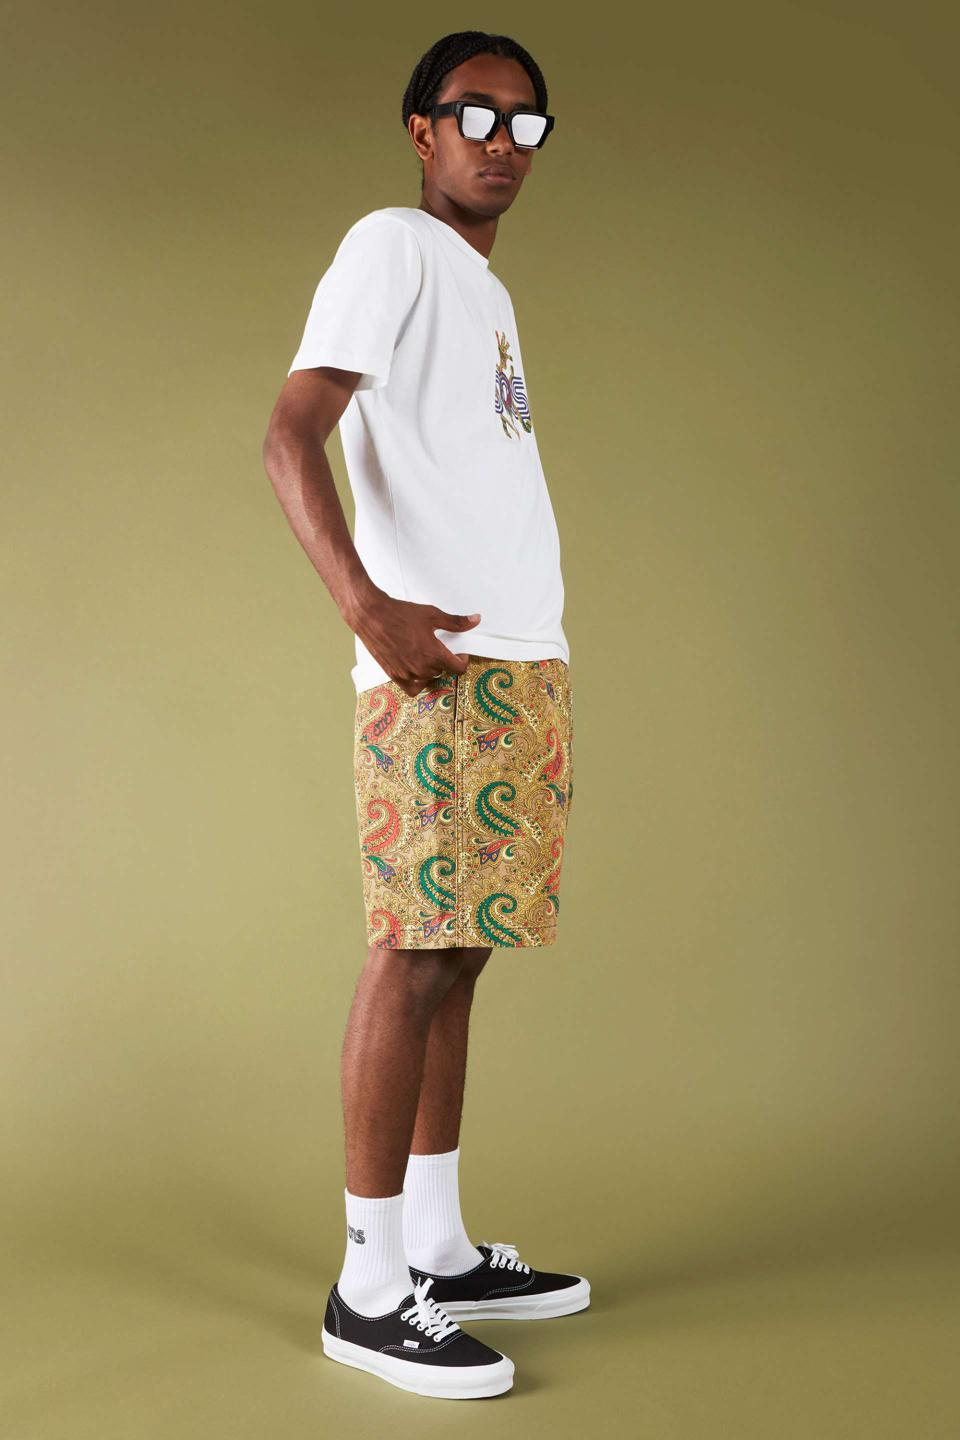 SNS x Gramicci Tee and Paisley G-Shorts, available in three colorways is a colorful, electric injection into any summer wardrobe